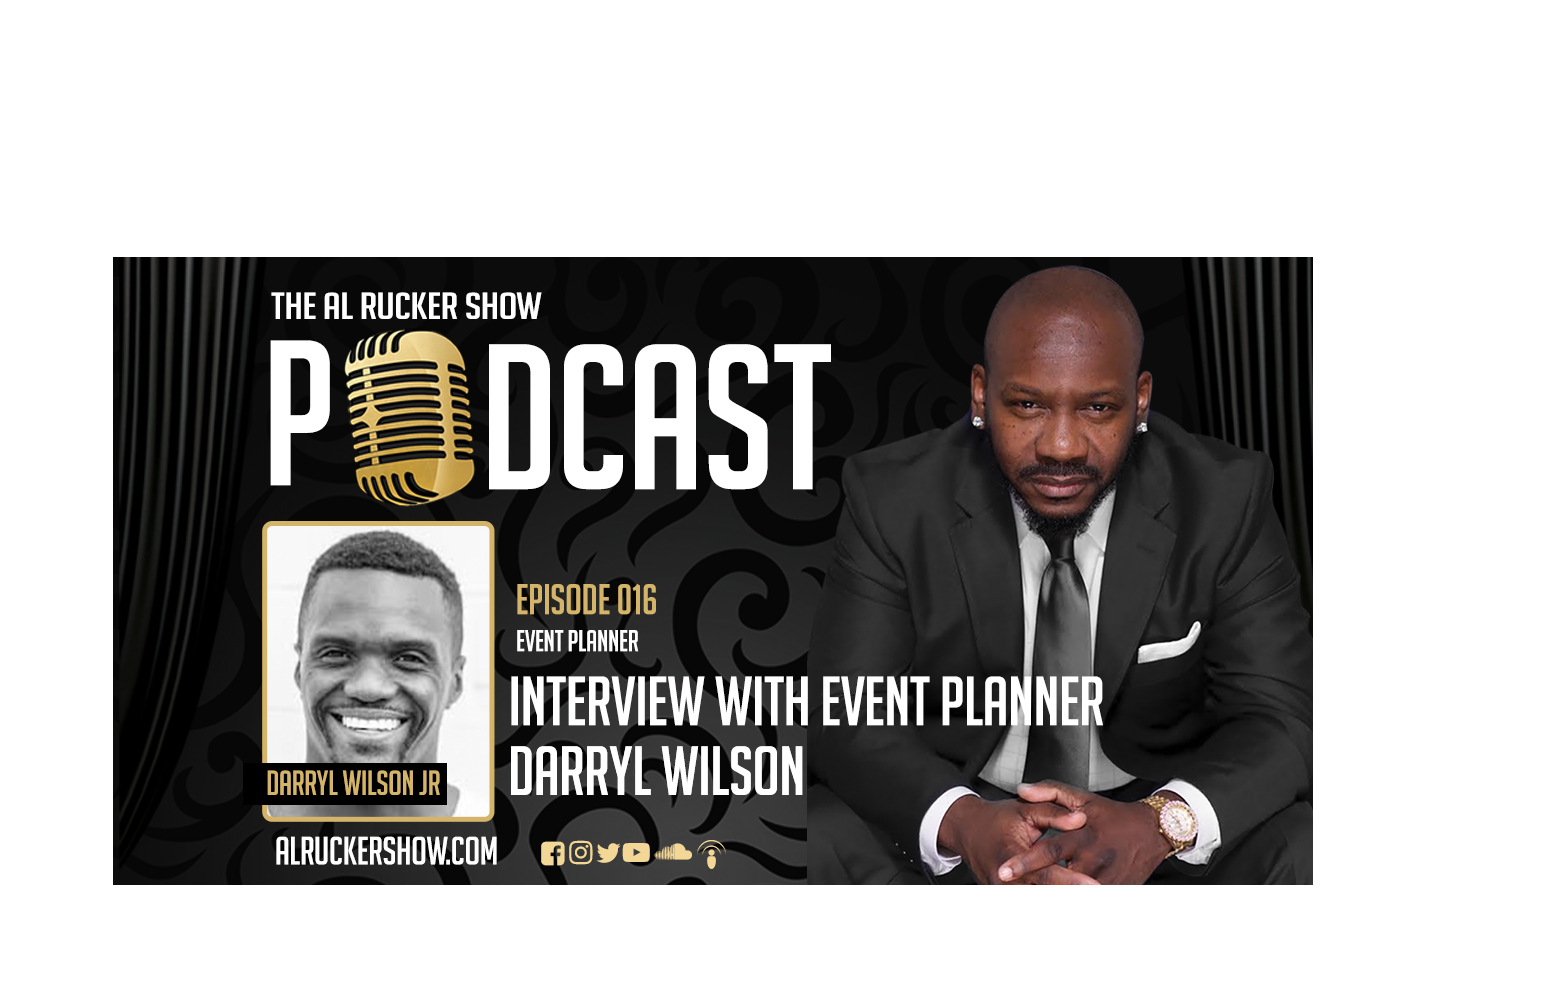 Al Rucker Show Podcast – Interview with Event Planner Darryl Wilson Jr (Episode #016)